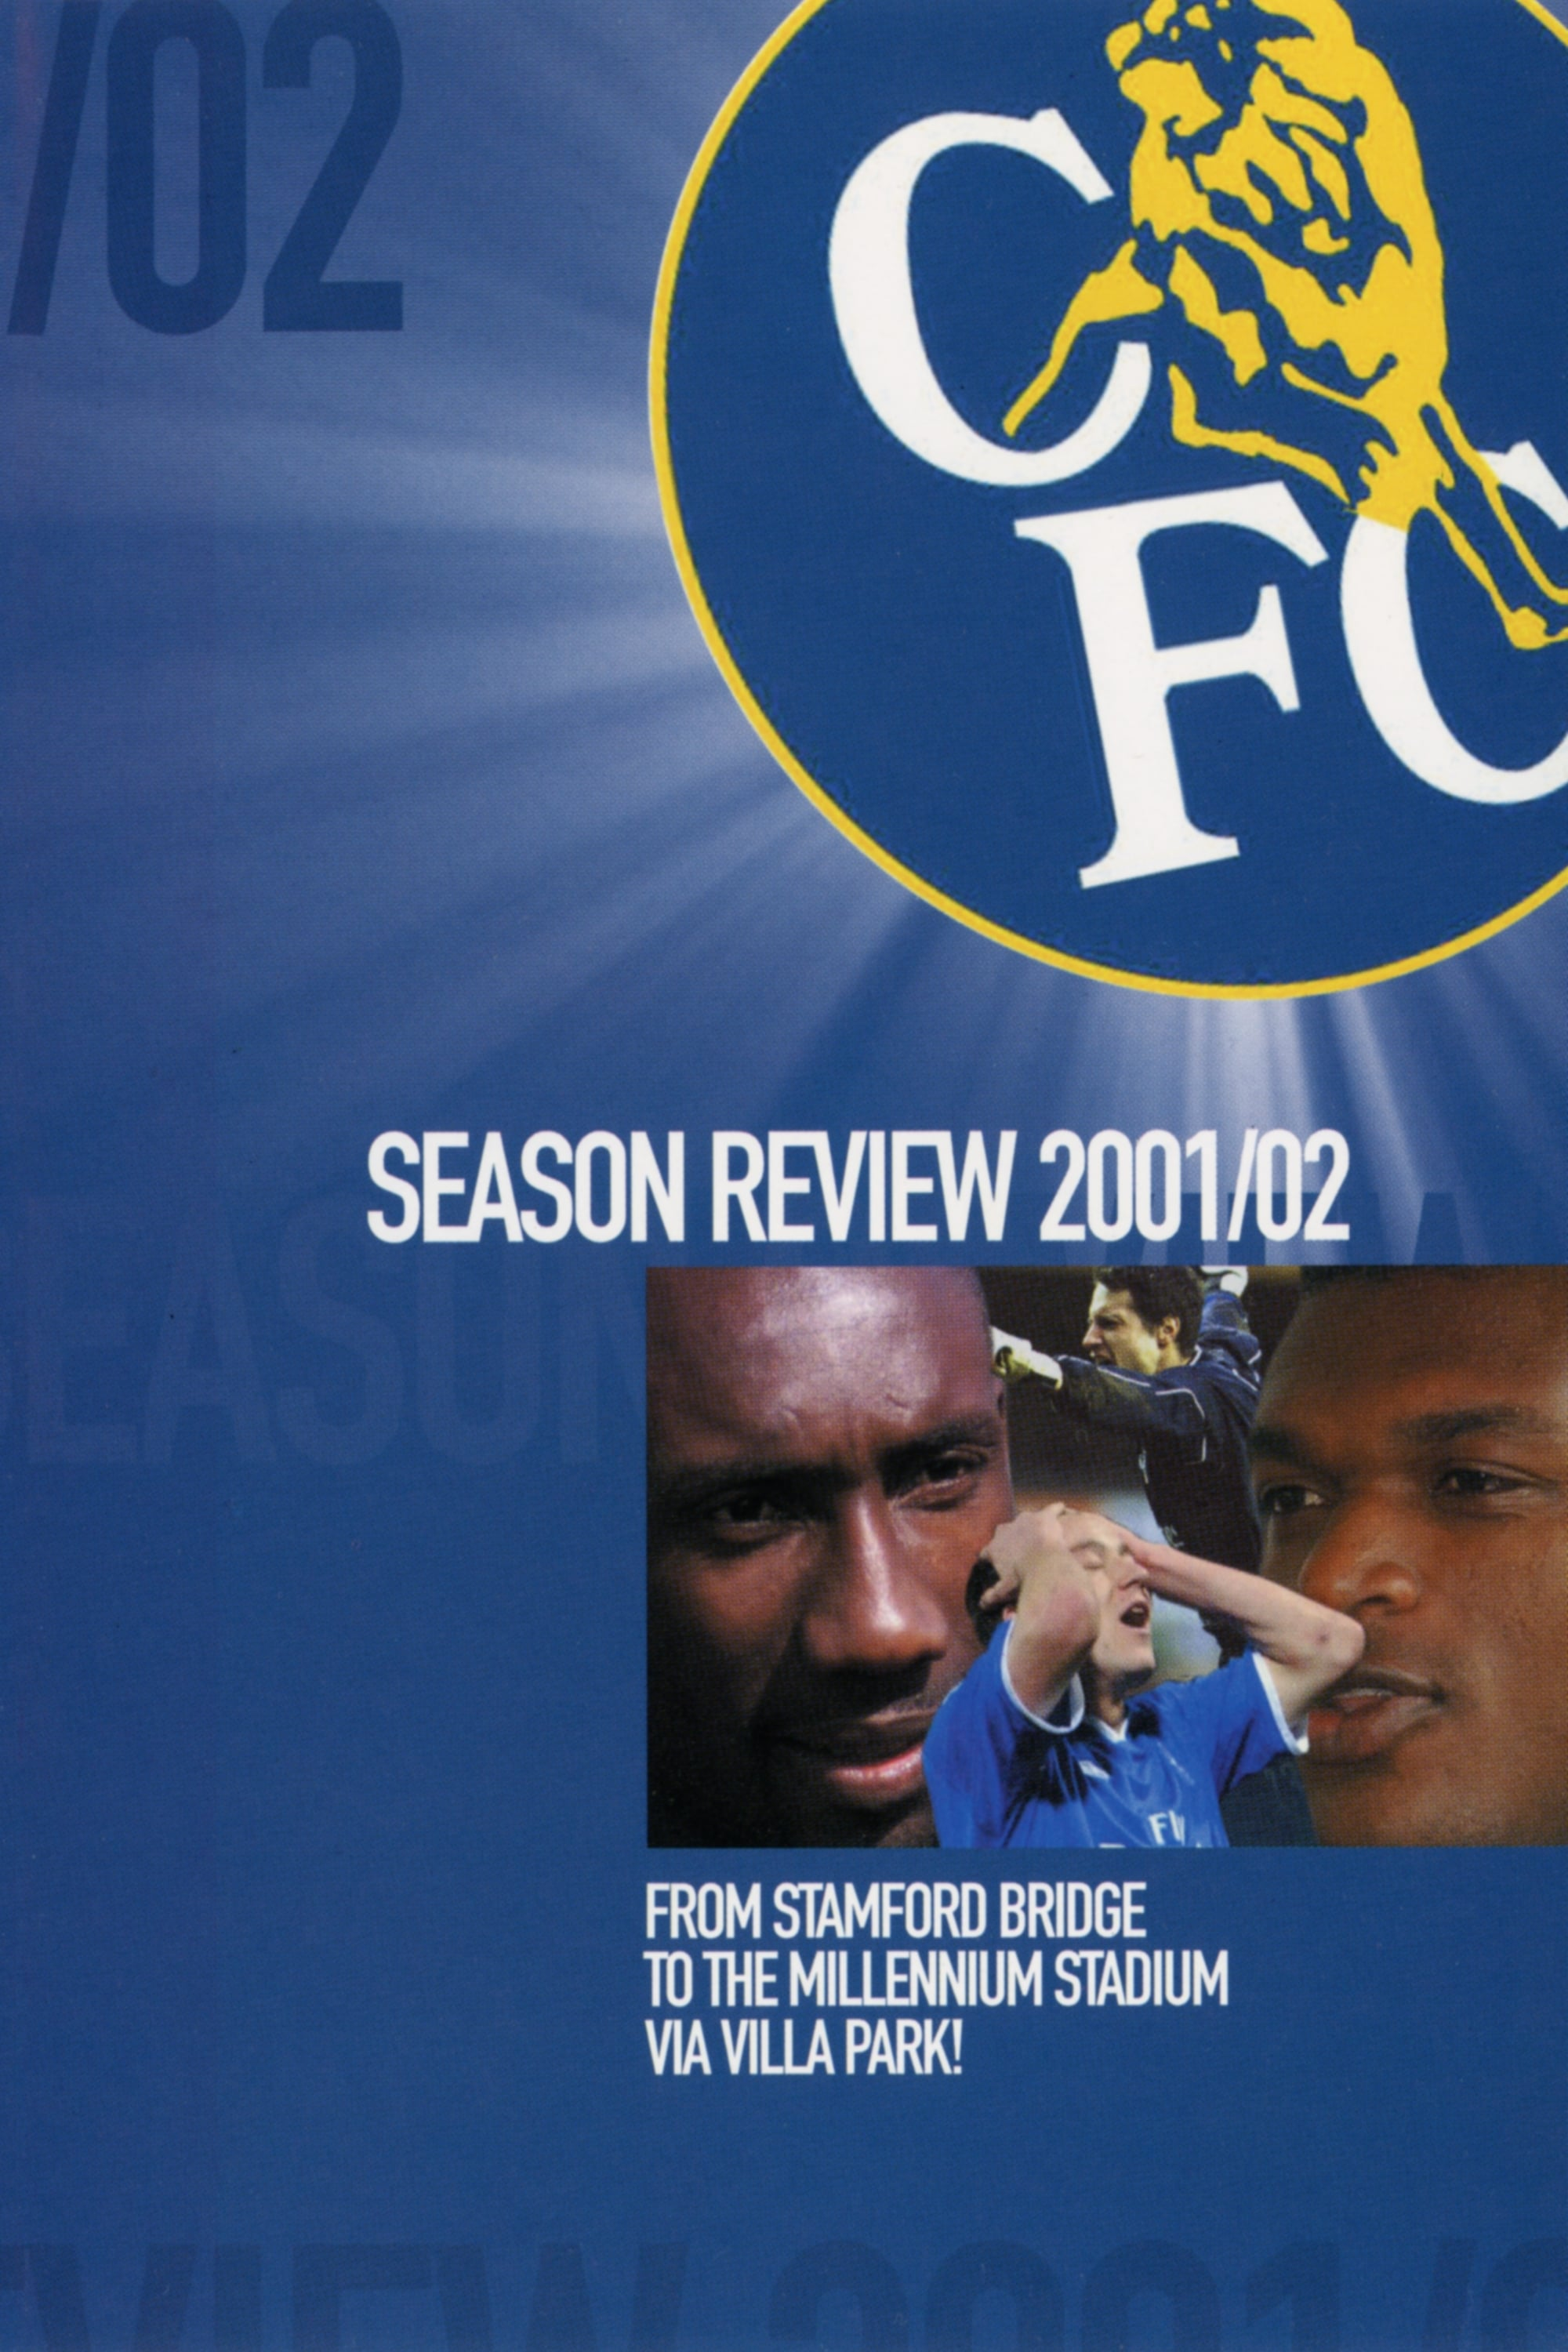 Chelsea FC - Season Review 2001/02 (2002)